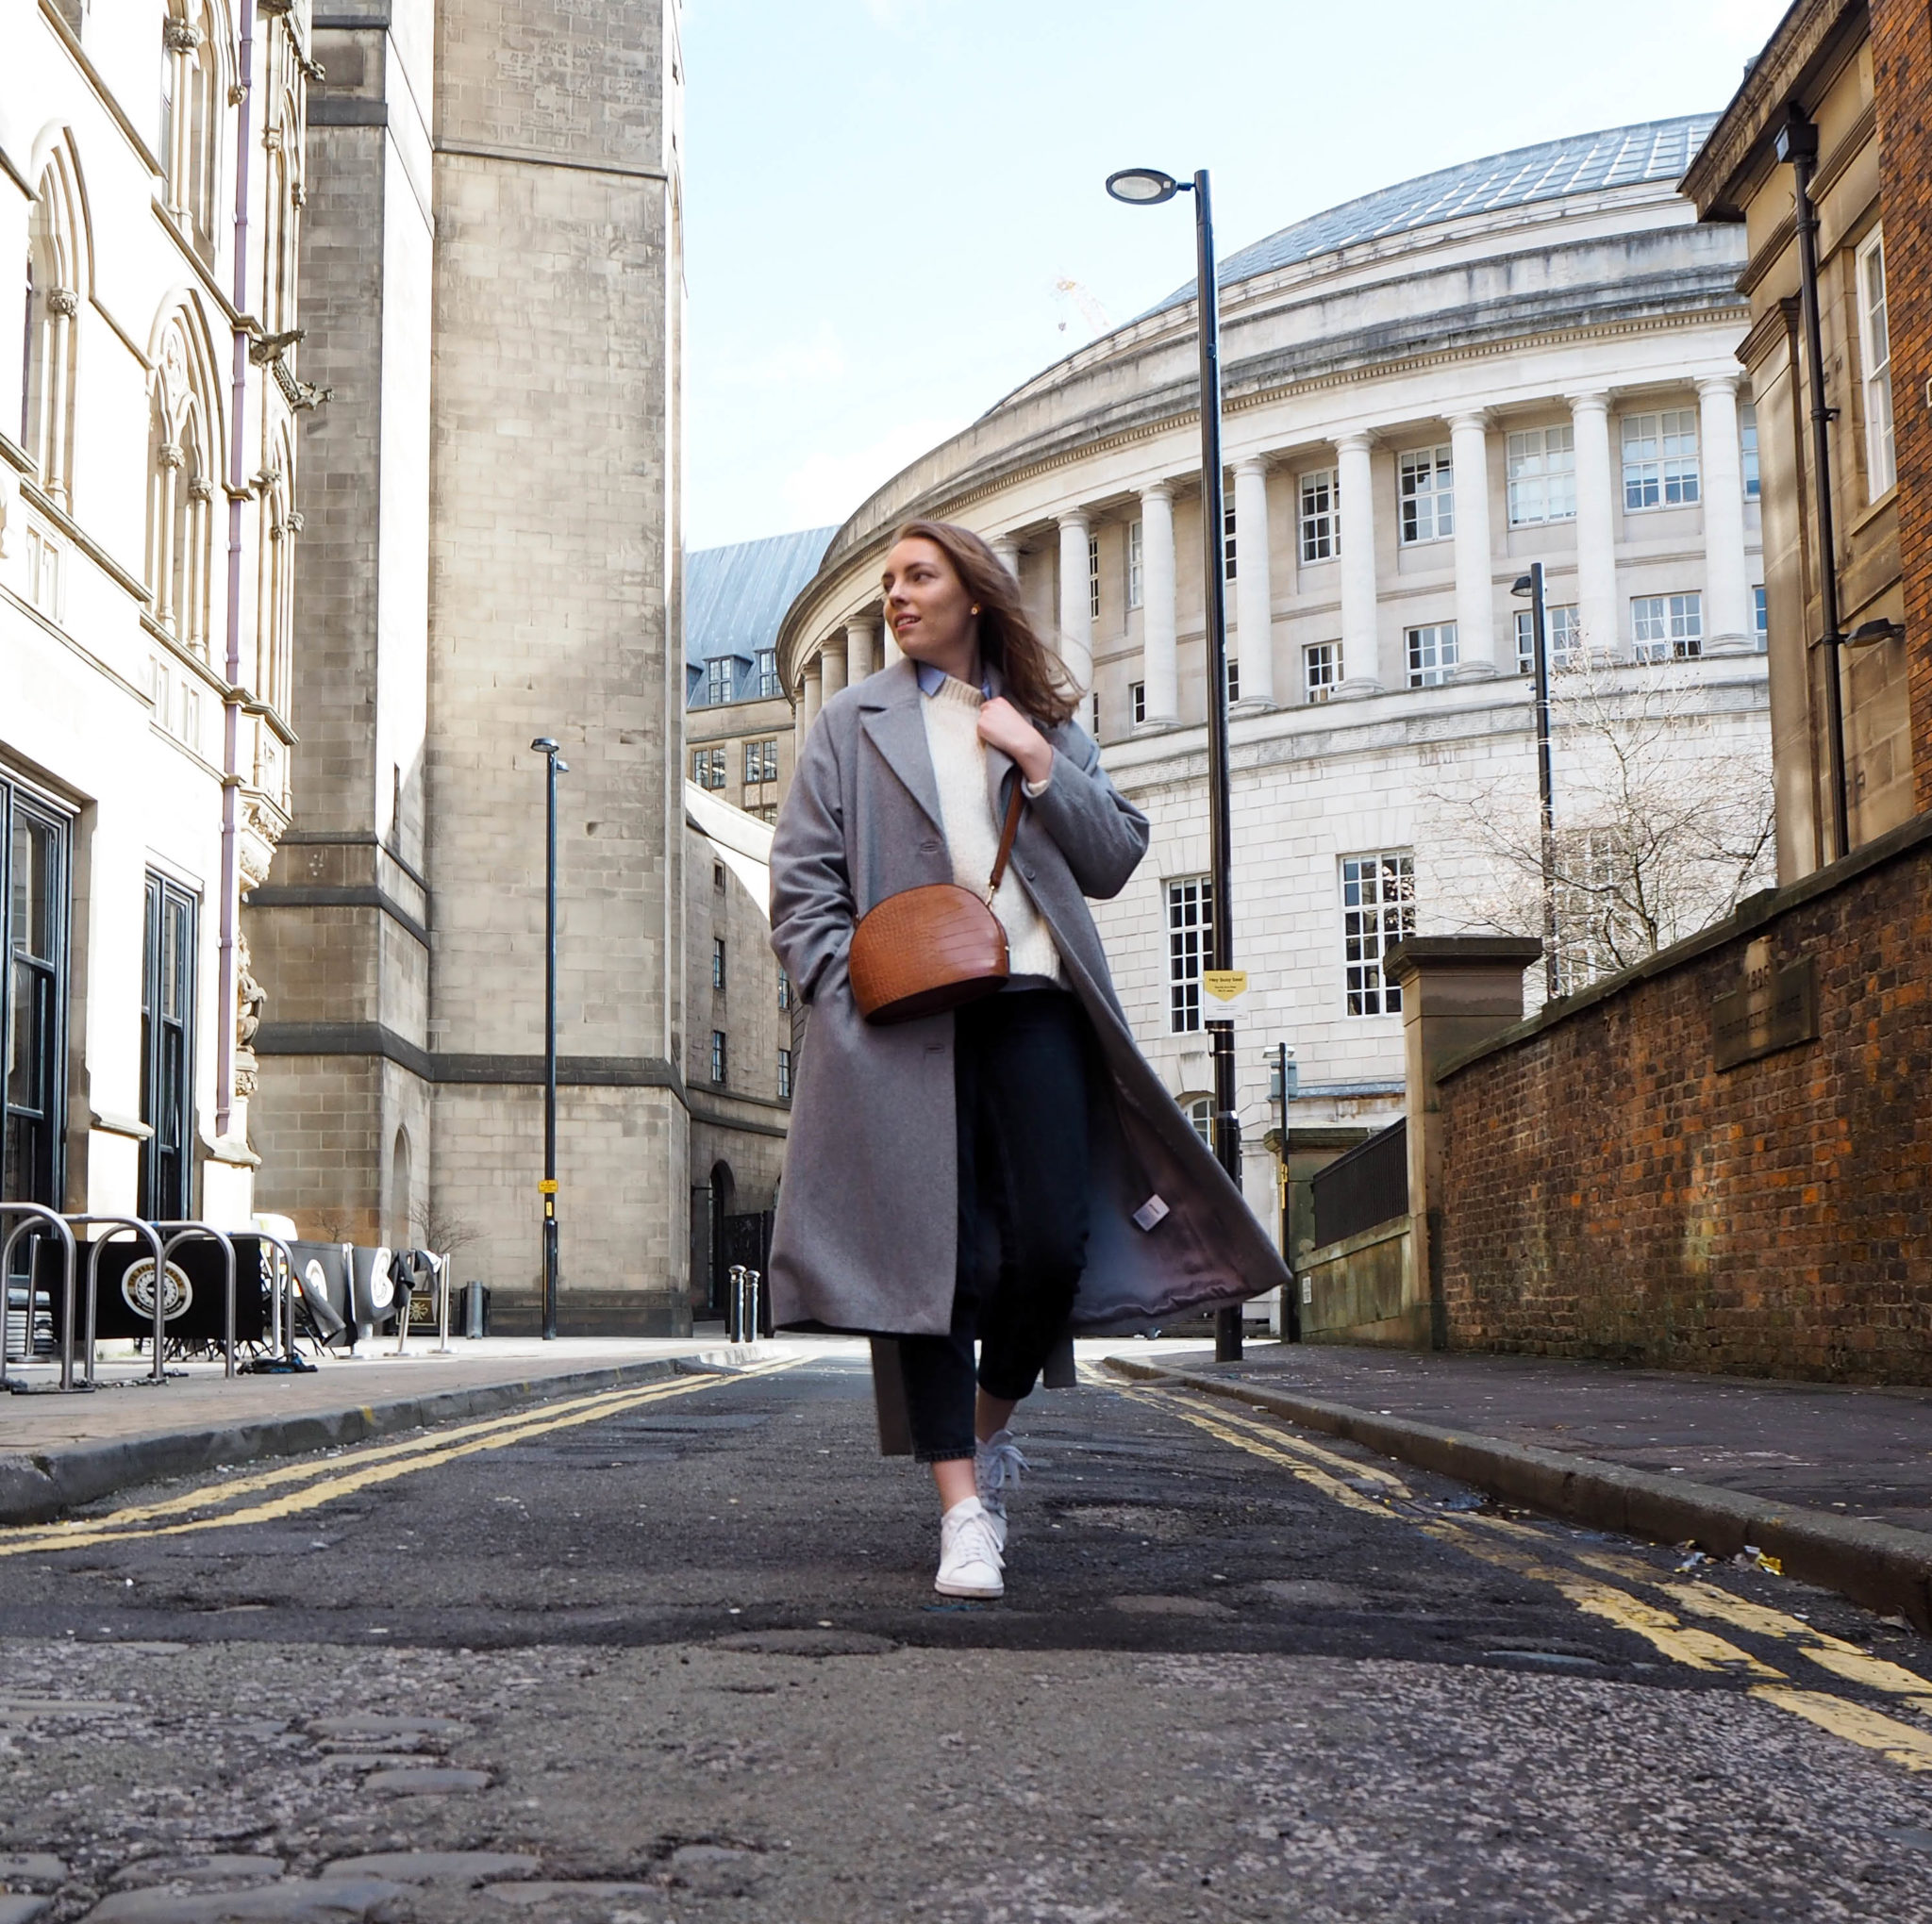 young woman wearing long grey coat and white Adidas trainers in Manchester street style shot